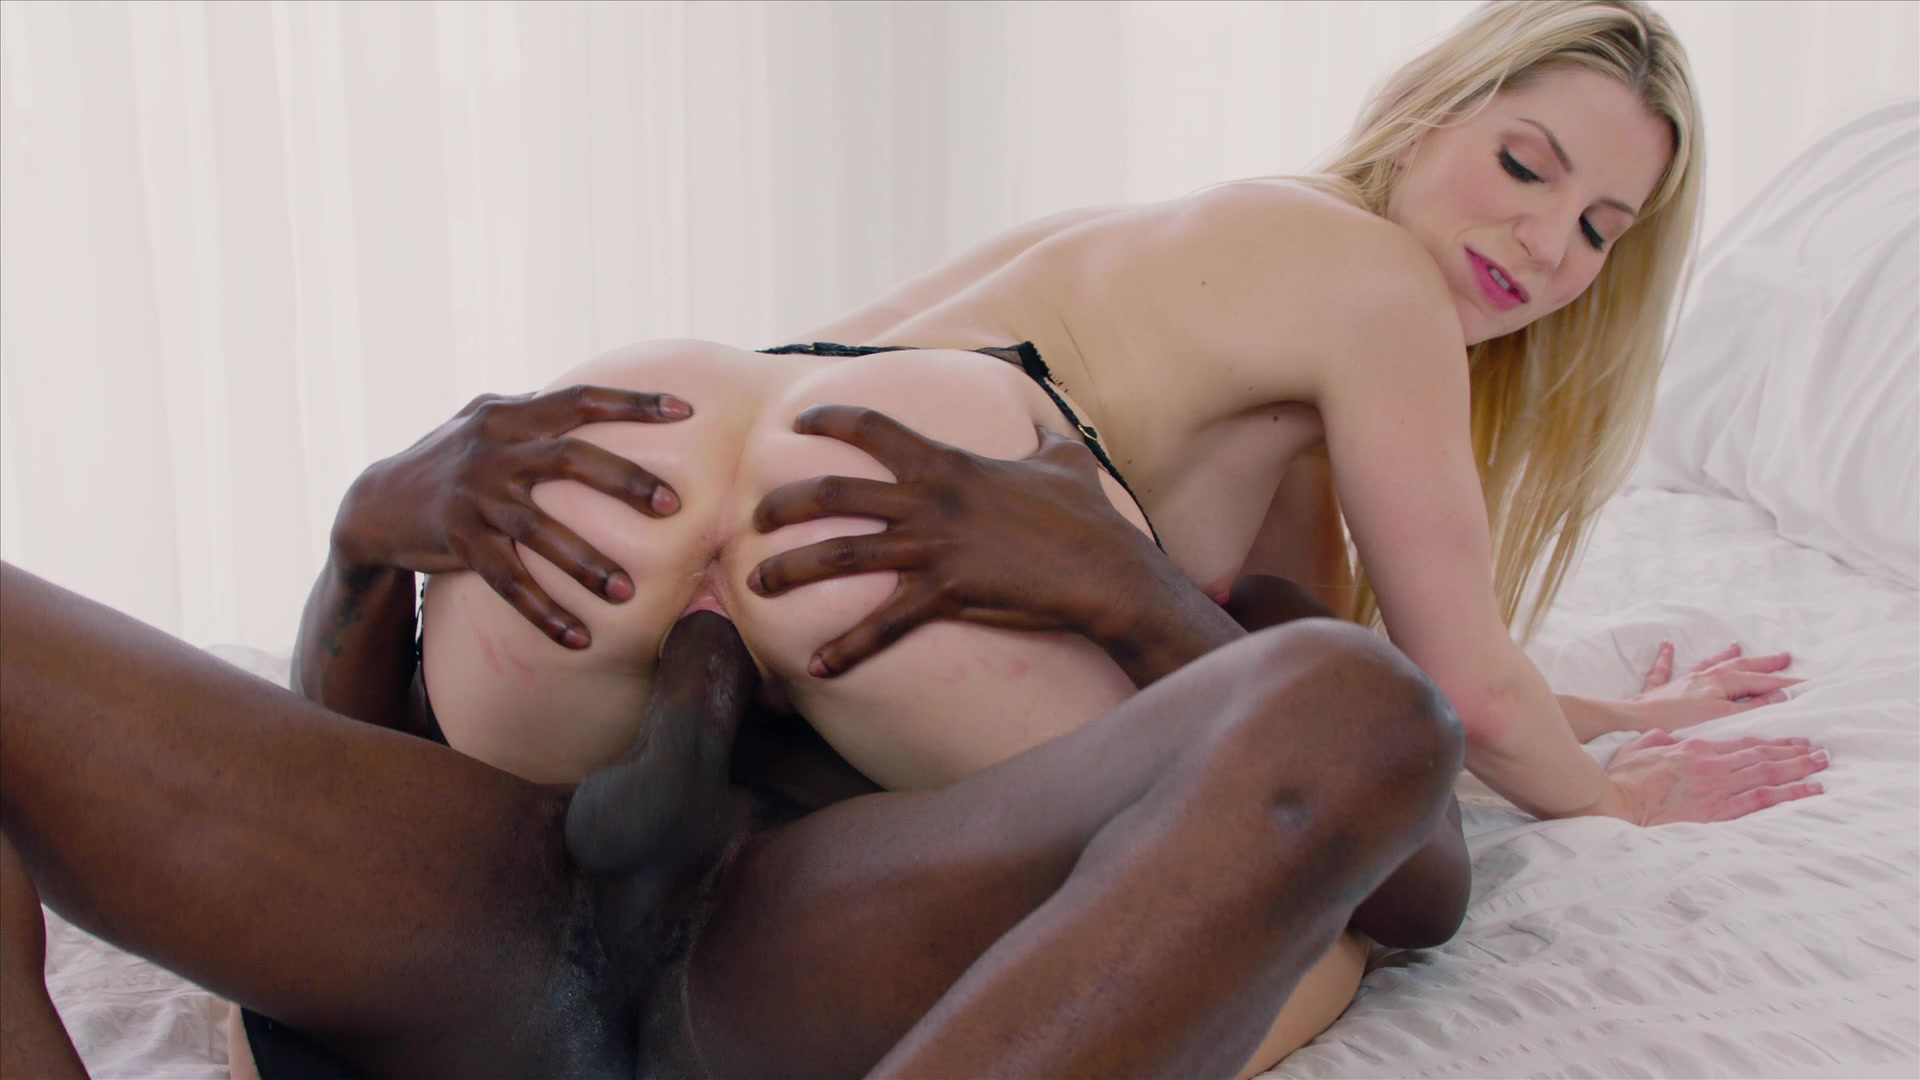 Best Interracial Porn Clips